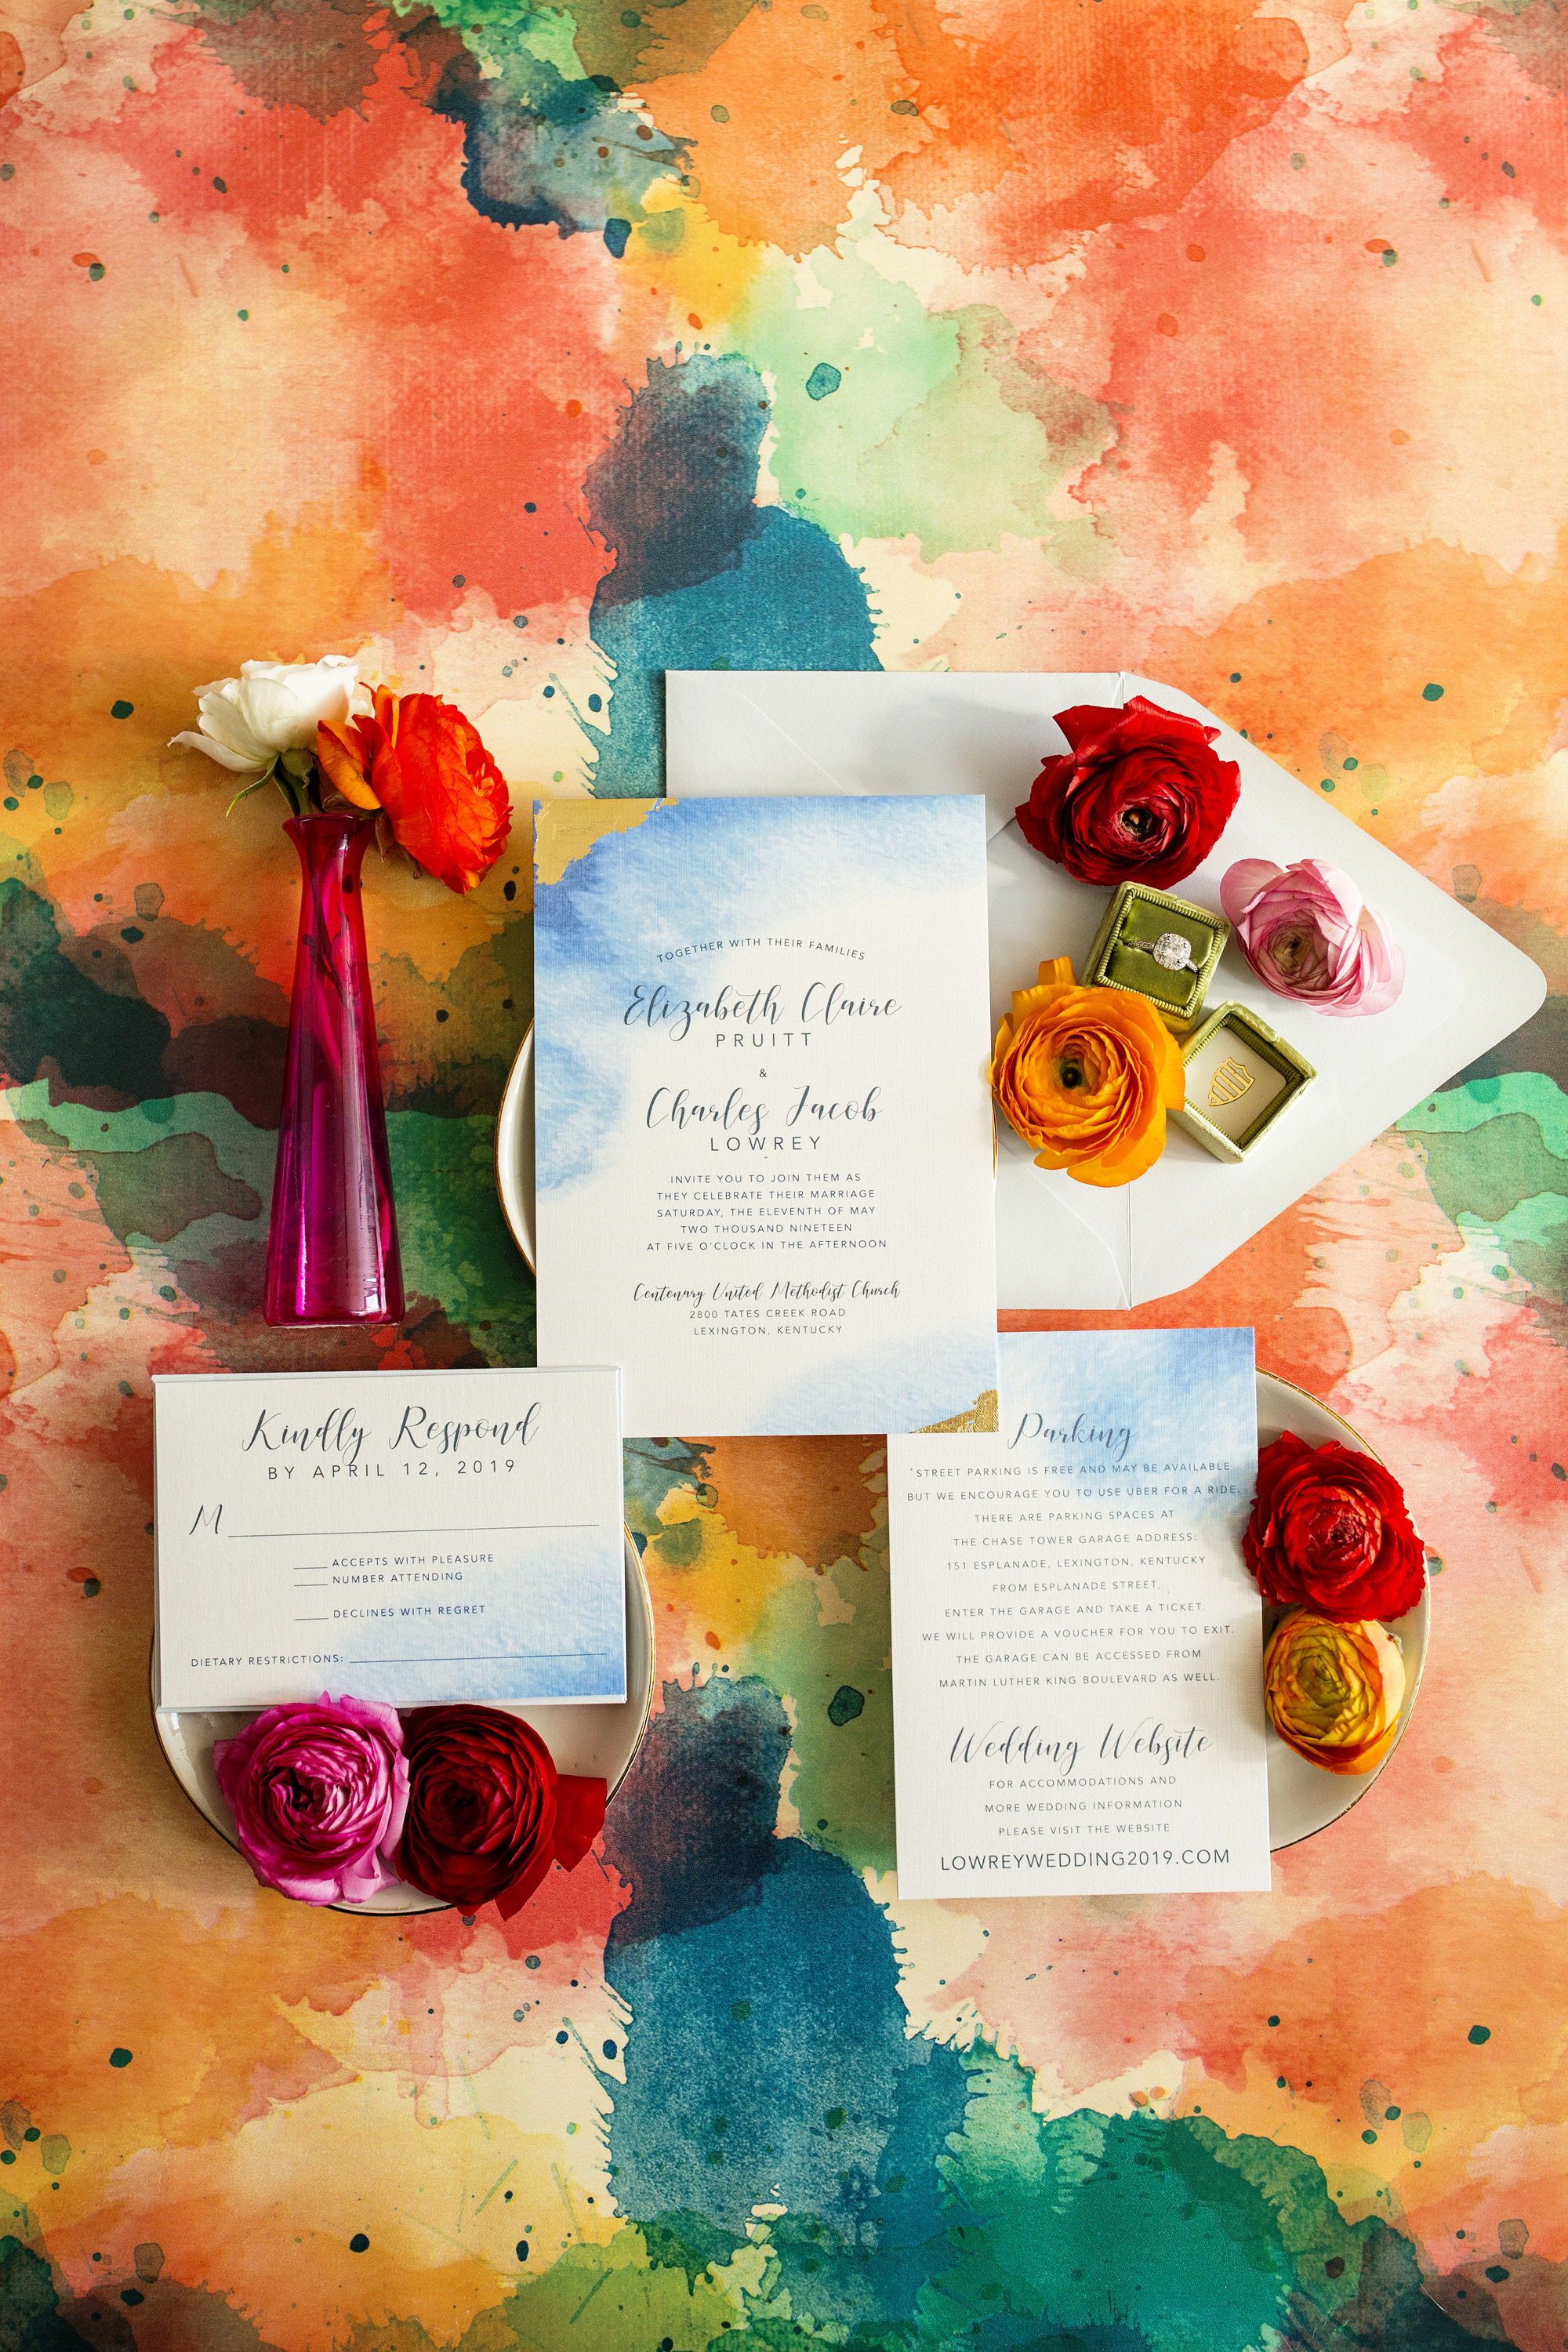 Seriously_Sabrina_Photography_Commercial_Simply_Done_Invites_2019_March_036